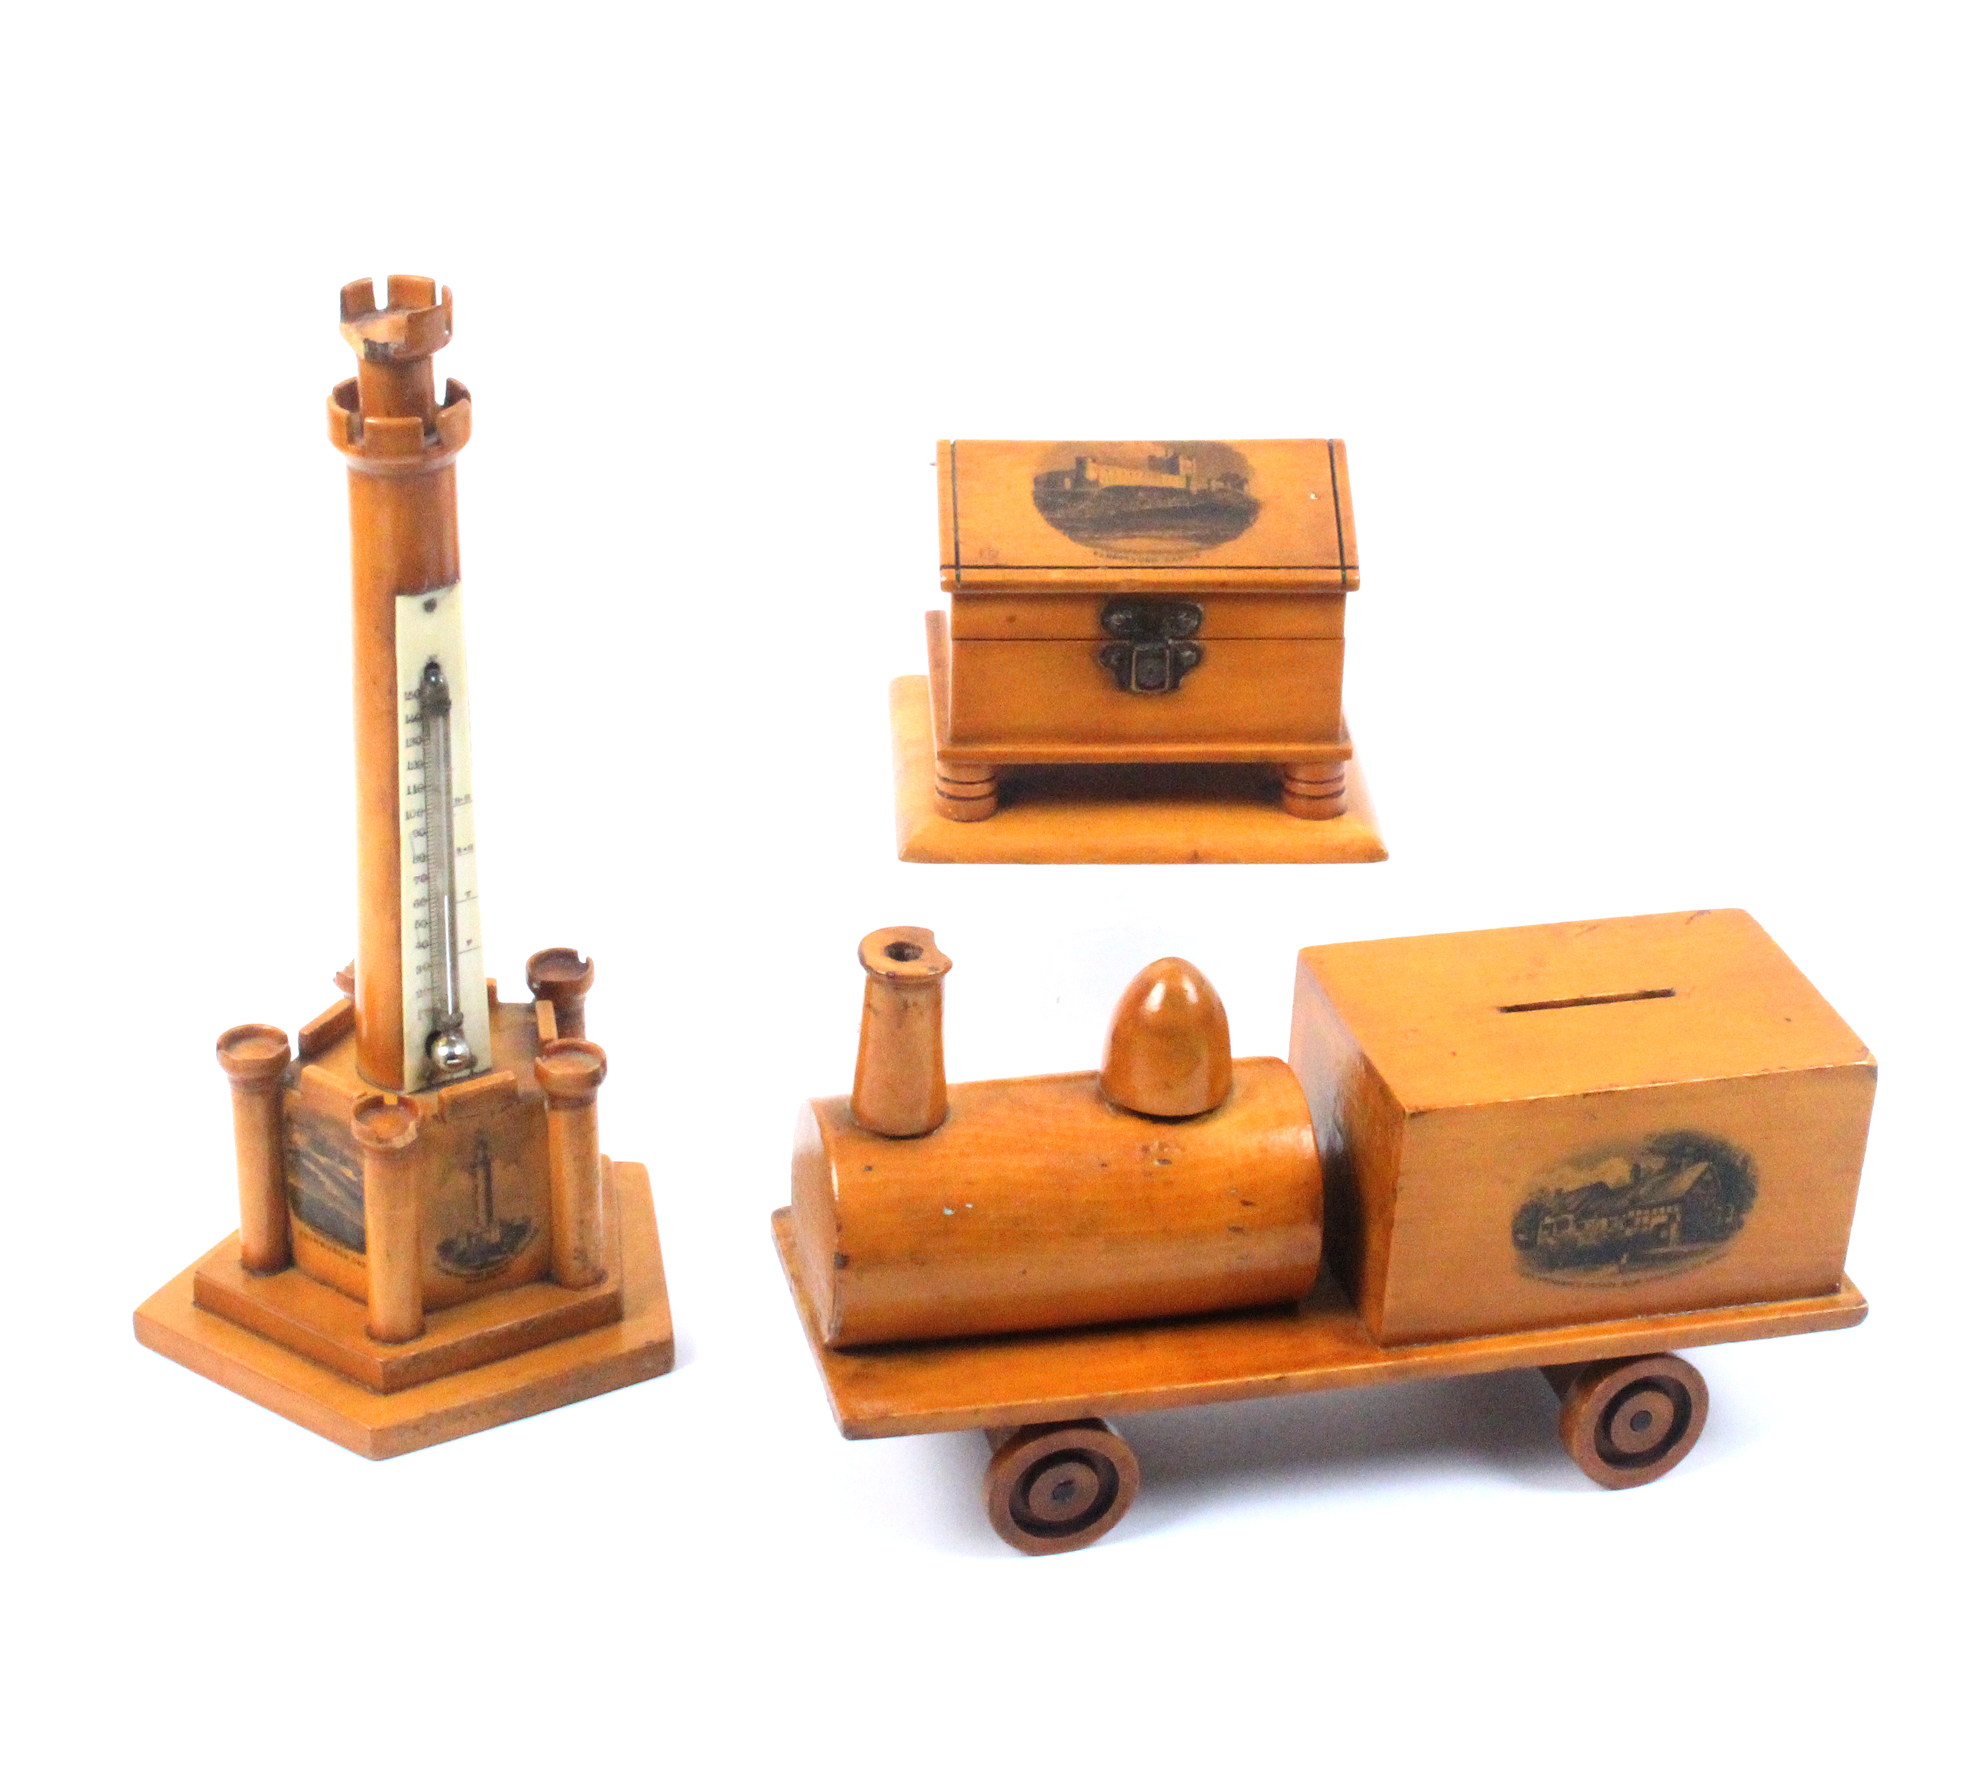 Lot 57 - Mauchline ware - three pieces - comprising a money box in the form of a train (Ann Hathaway's